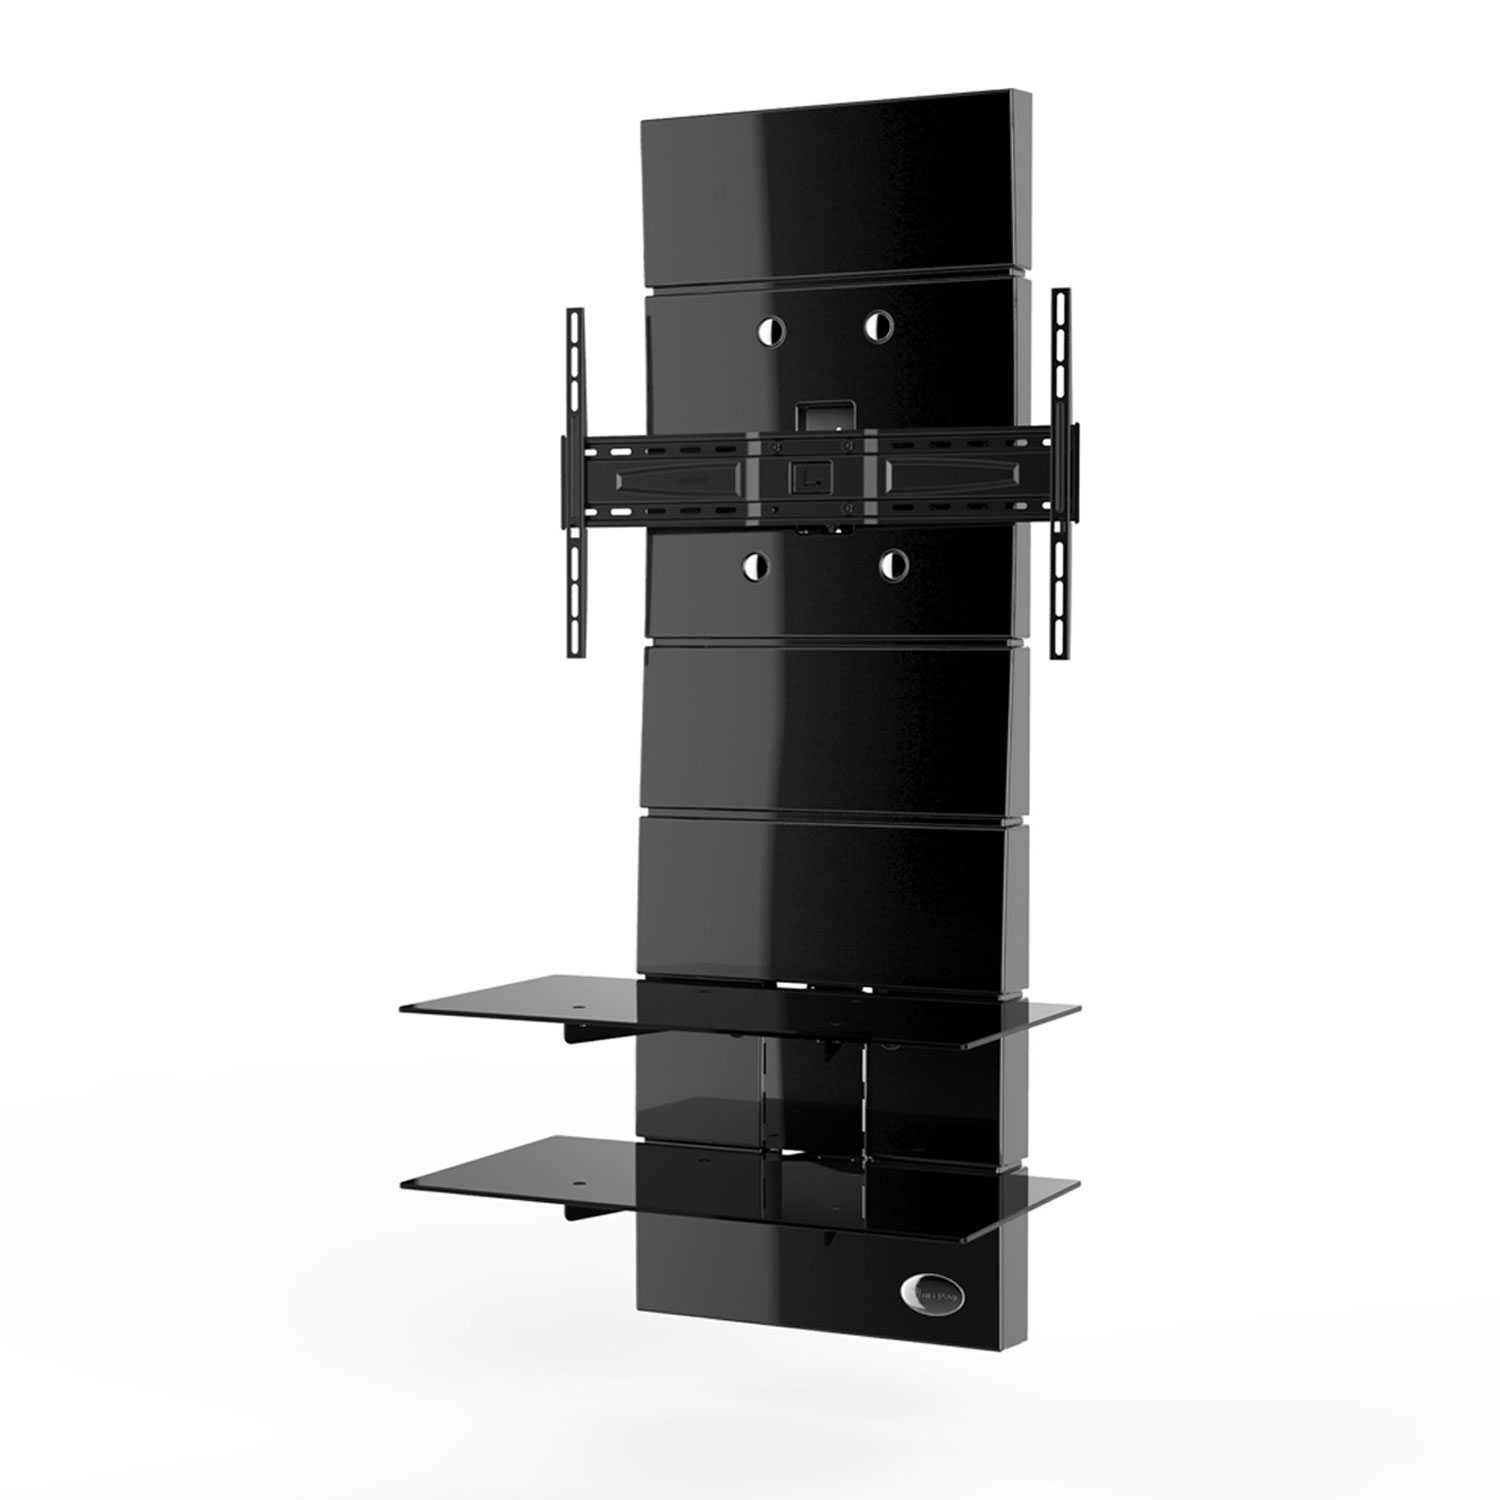 meliconi ghost design 3000 noir meuble tv meliconi sur. Black Bedroom Furniture Sets. Home Design Ideas